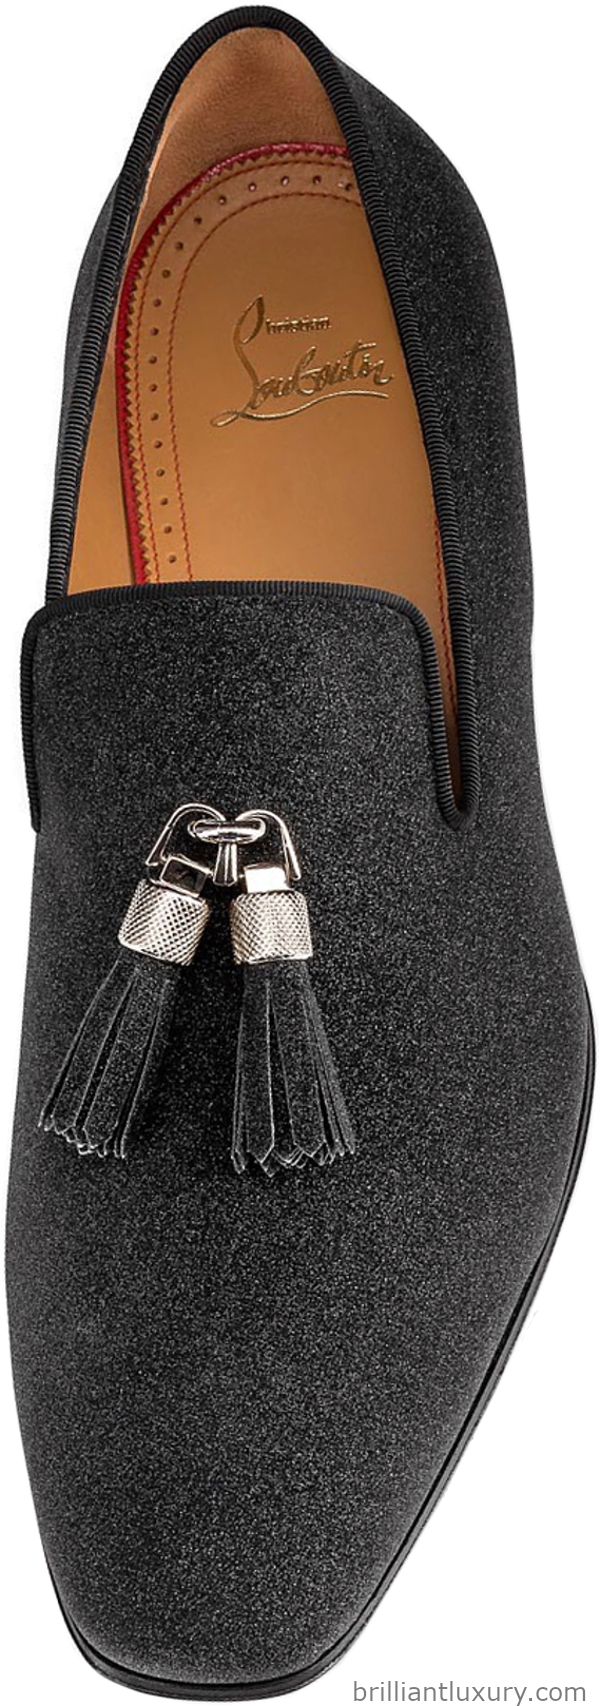 Christian Louboutin Rivalion mocassin in black calfskin leather with glitter and grosgrais